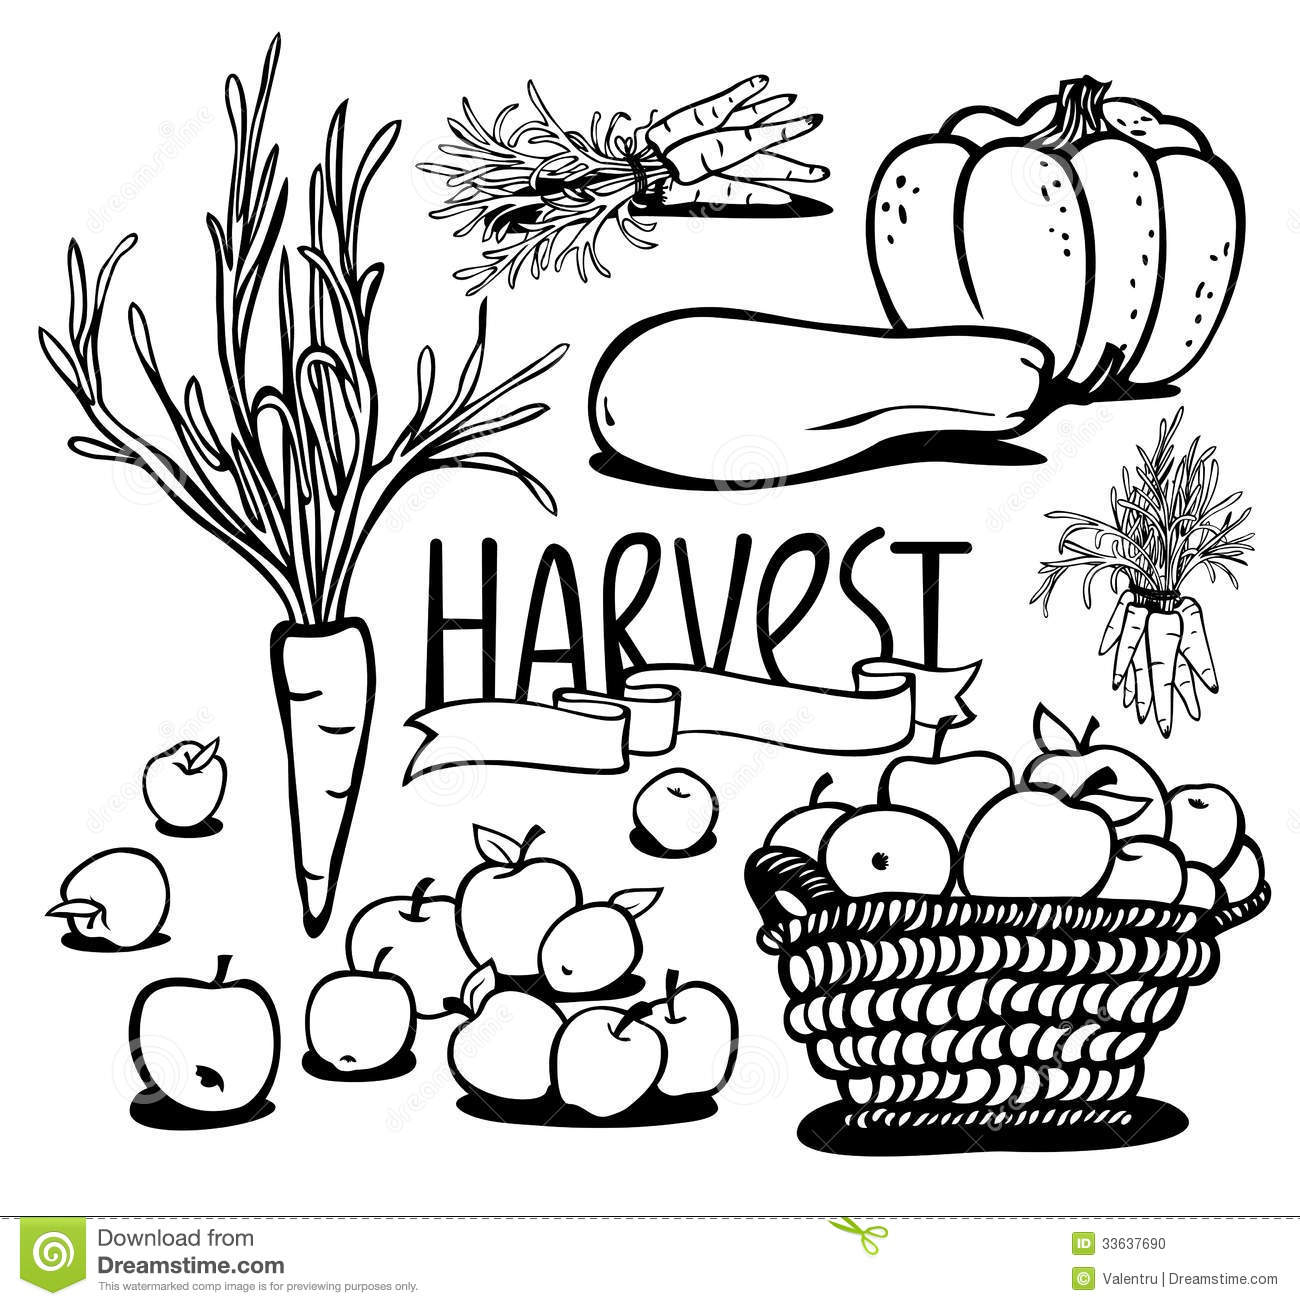 Harvest clipart black and white » Clipart Station.